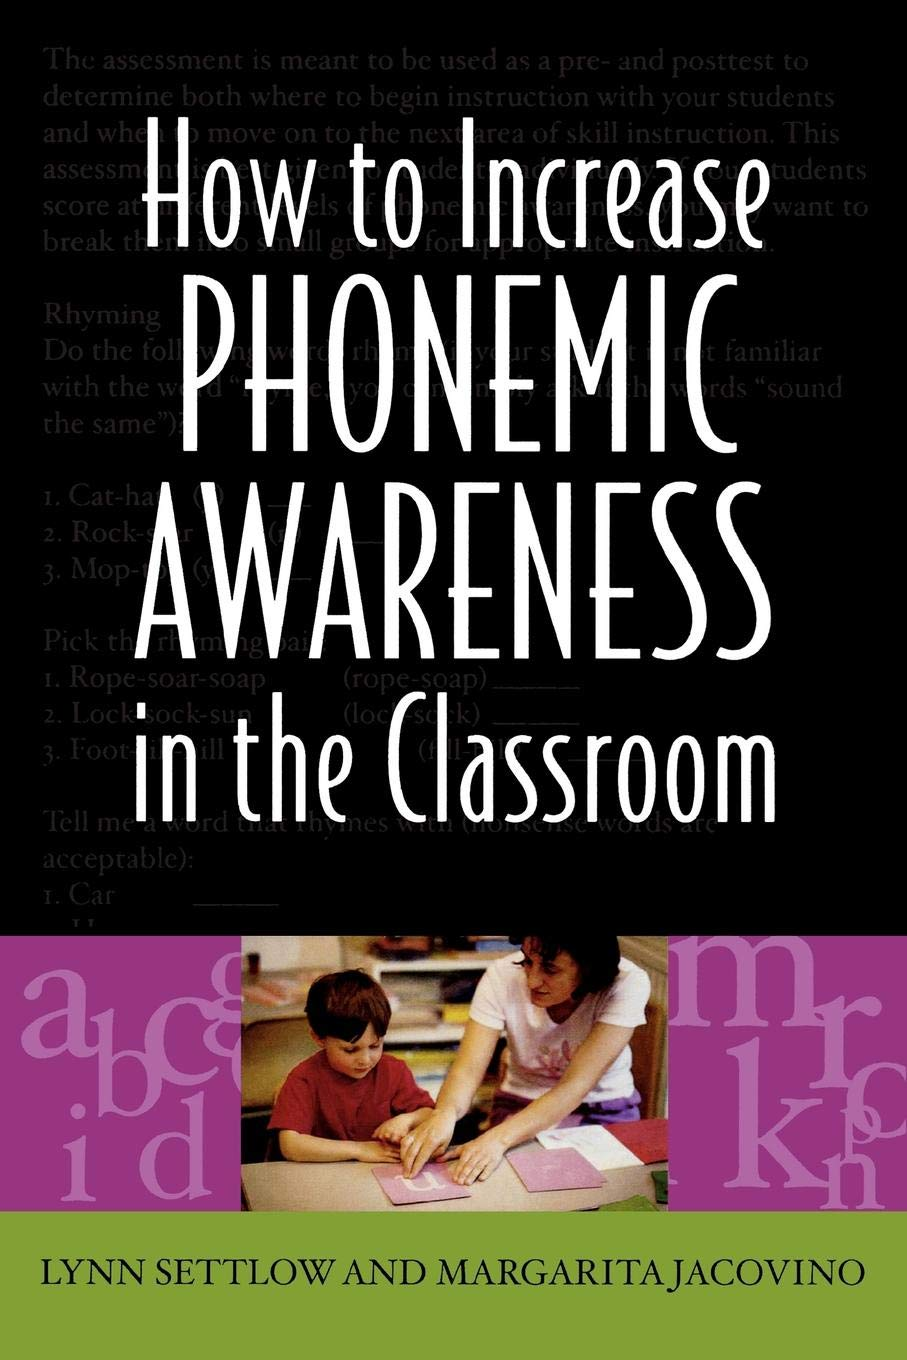 Download How to Increase Phonemic Awareness In the Classroom PDF